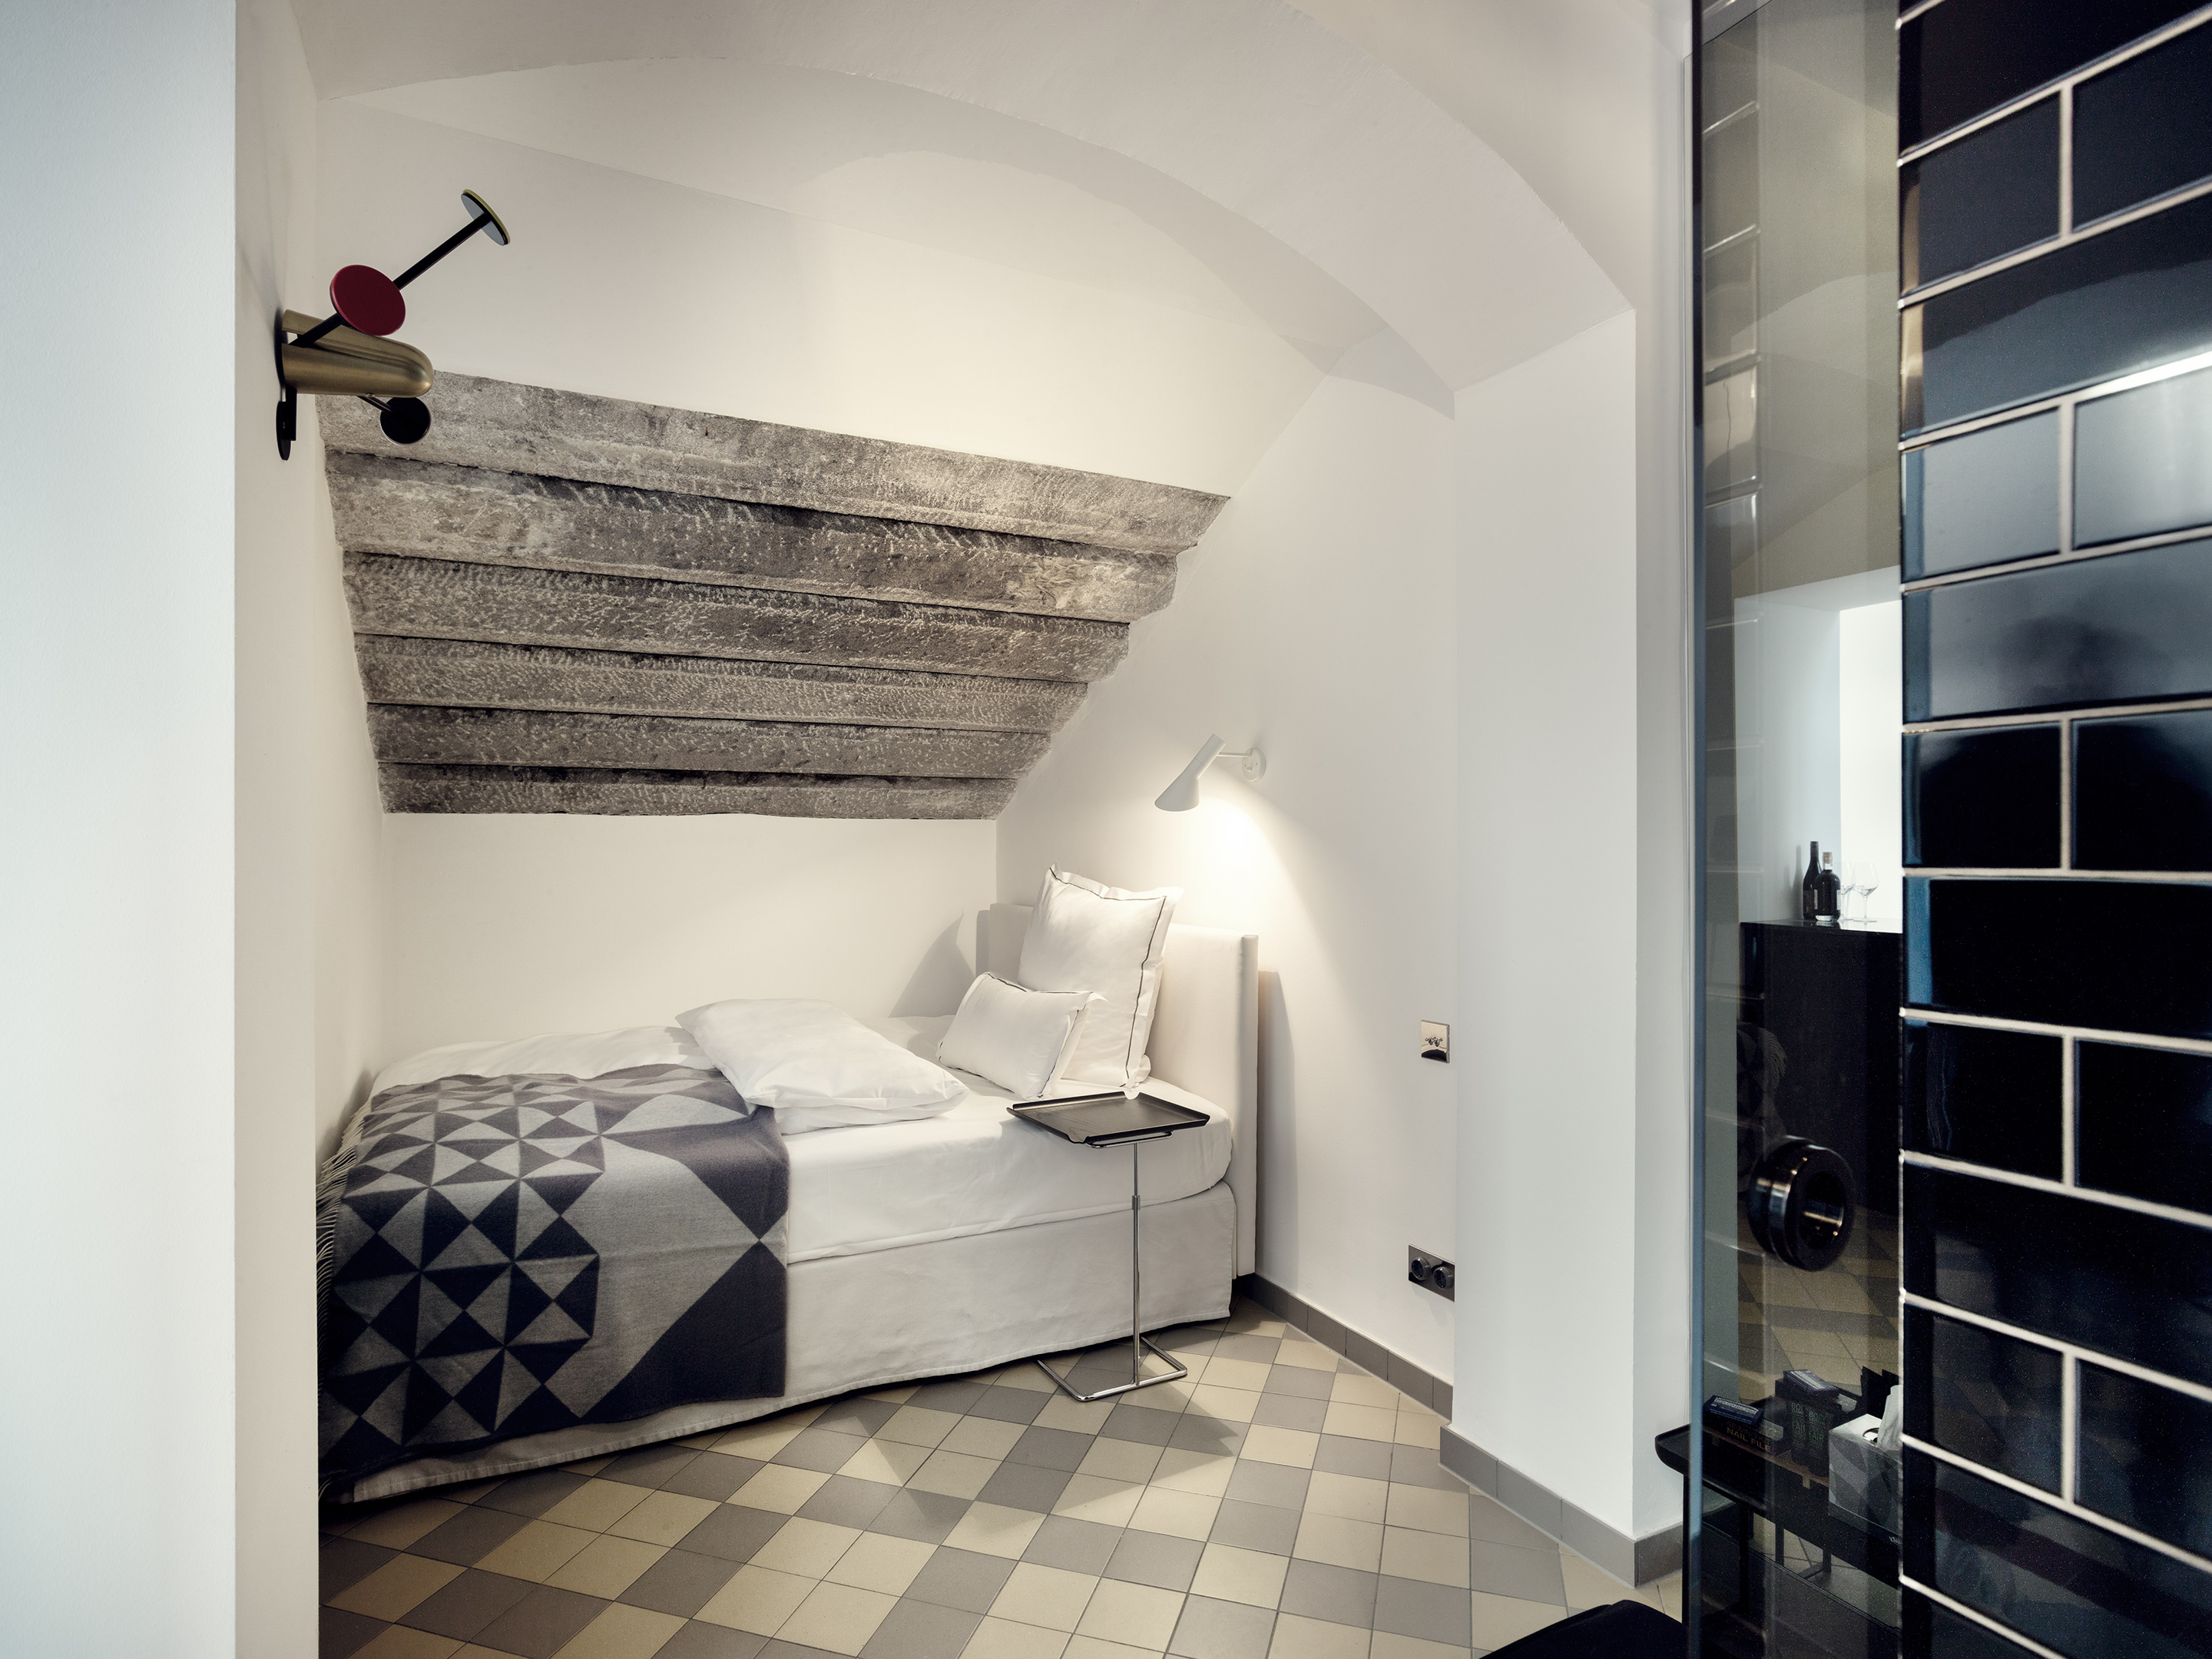 Rooms Amp Suites At The Qvest In Cologne Germany Design